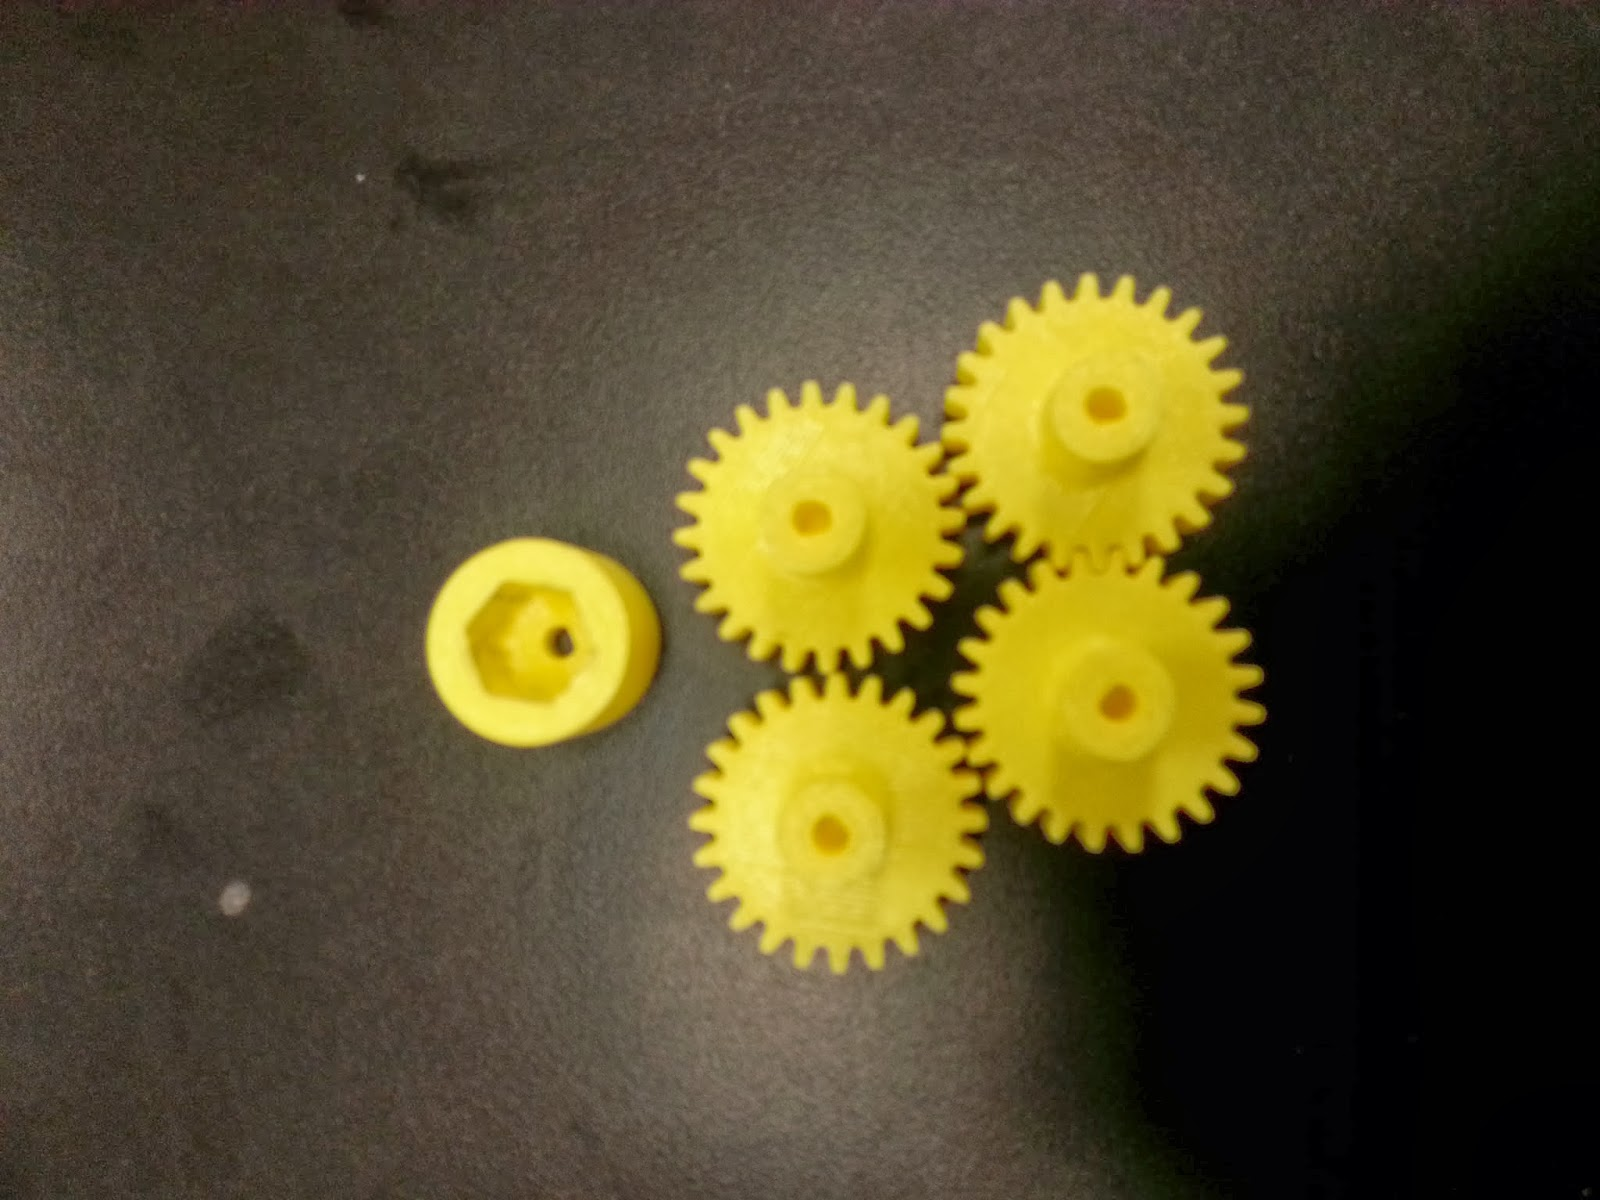 Day 34: Withholding allowance and 3D printed parts